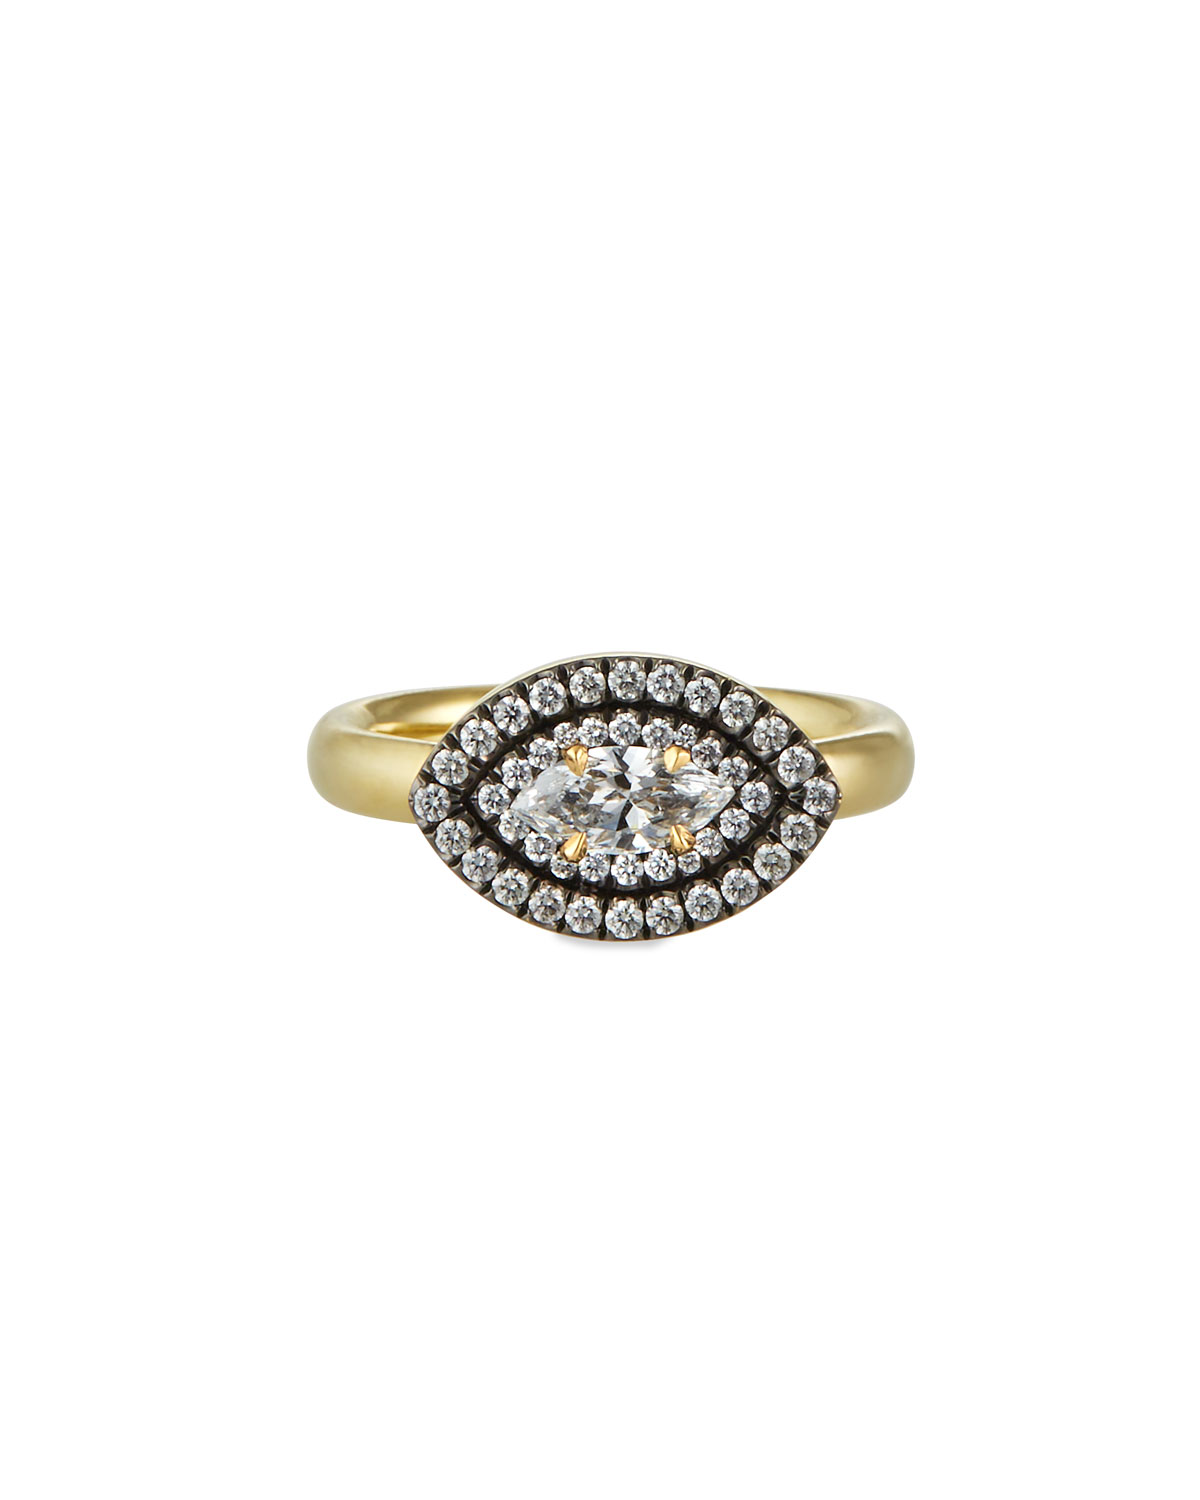 Prive Gold Marquise Diamond Ring